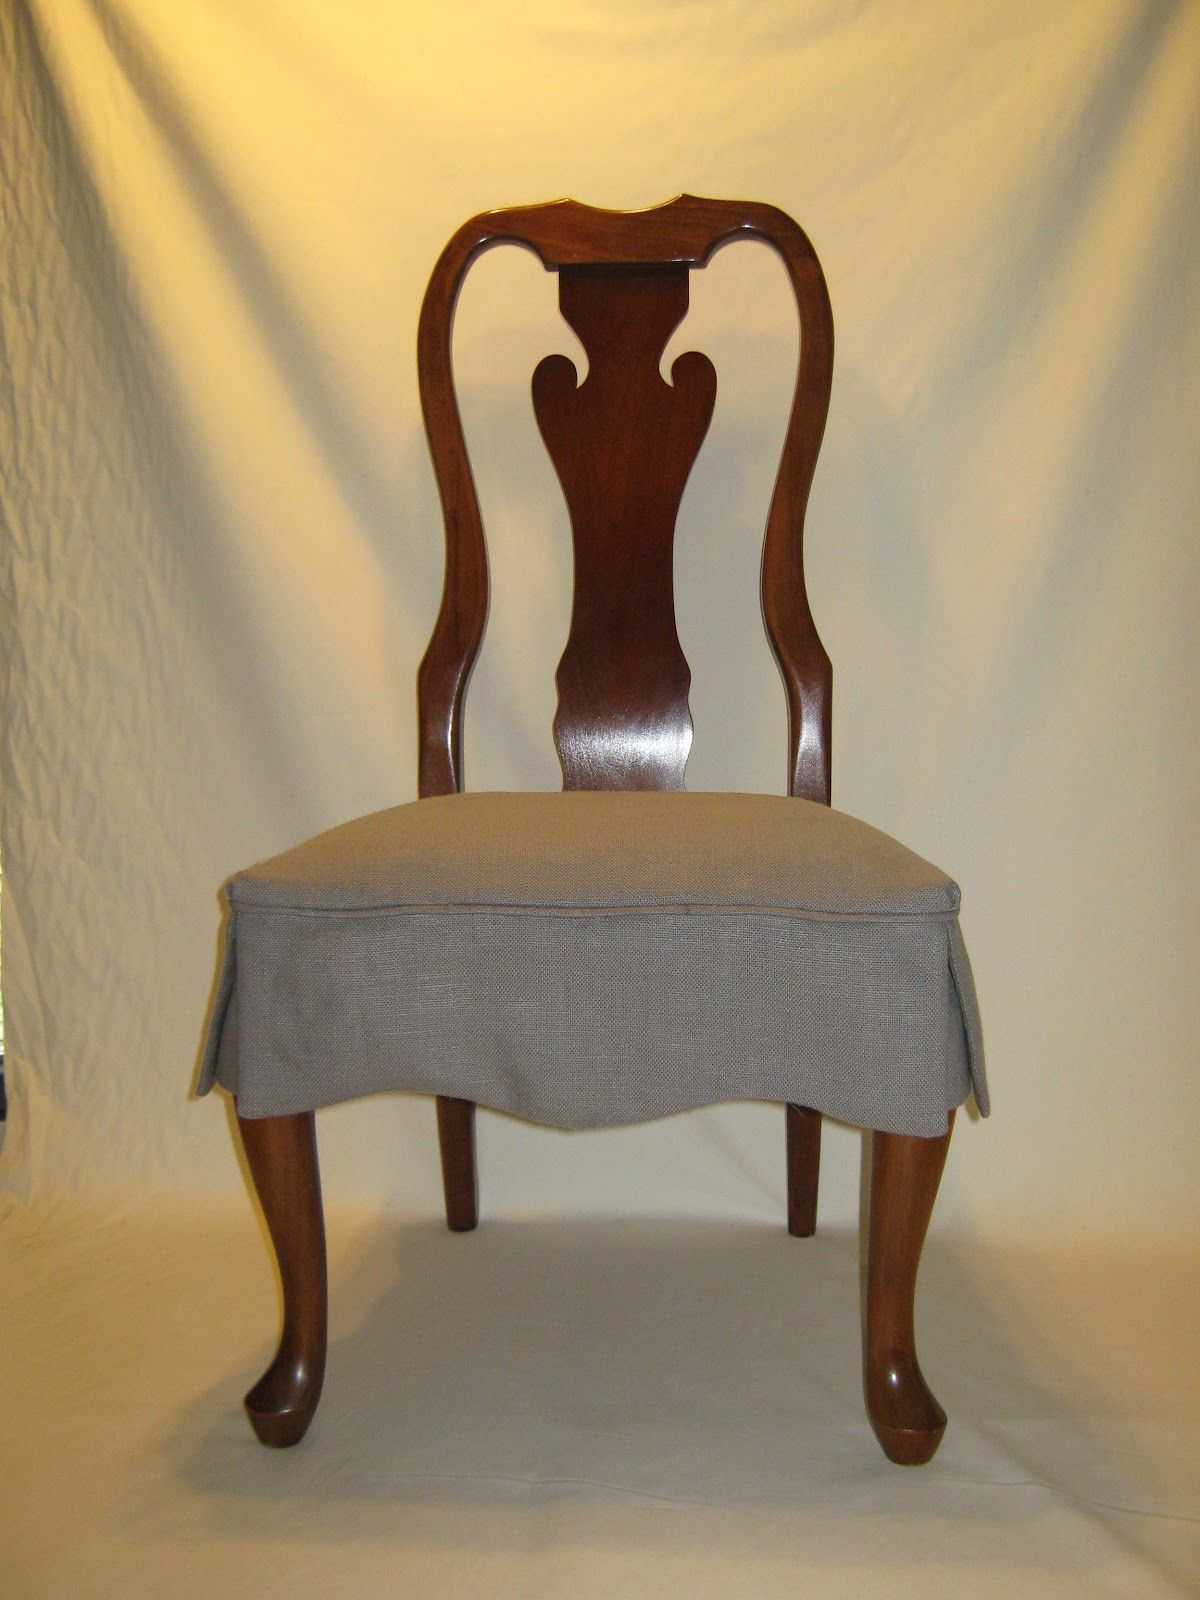 Slip Cover For Dining Chair